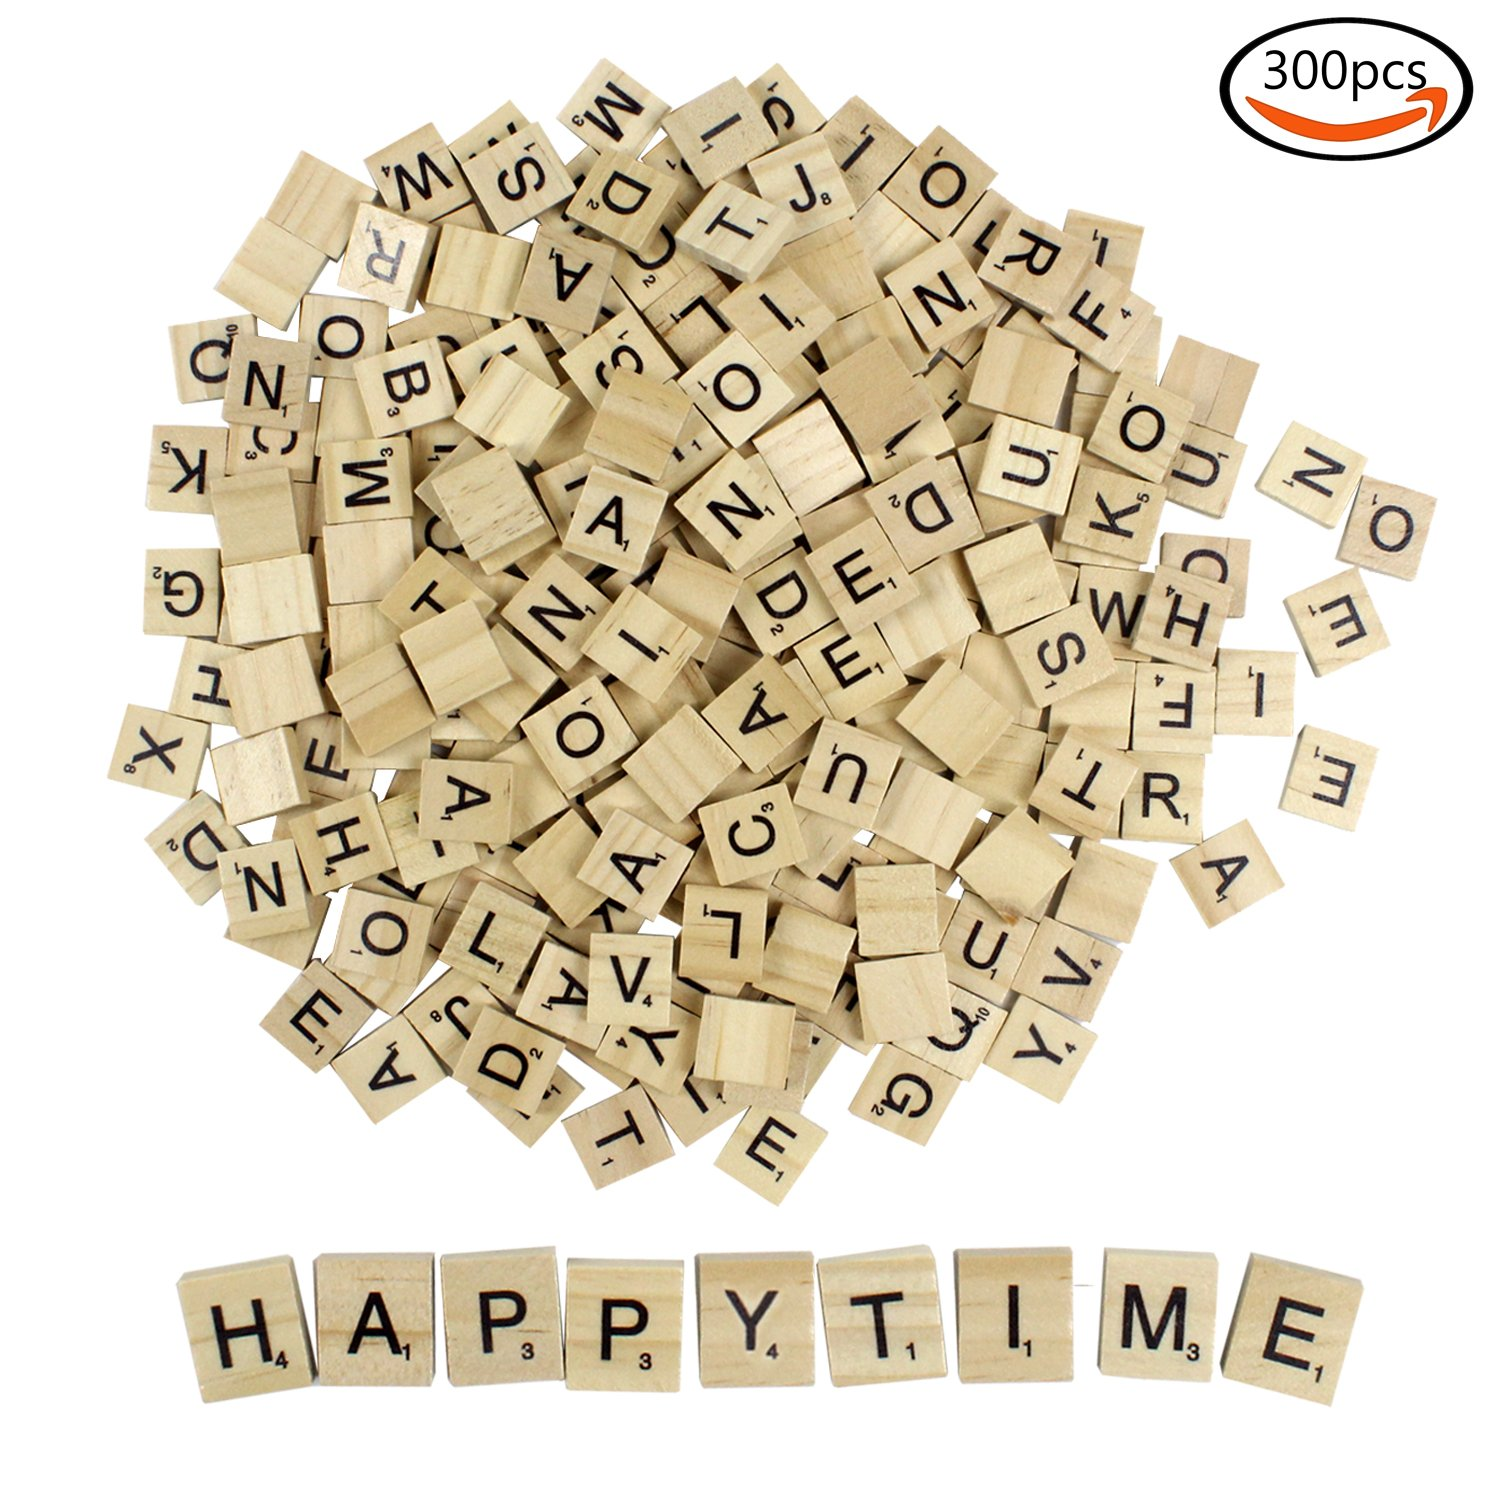 Goodlucky Wood 300pcs Scrabble Tiles Scrabble Letters Used for Replacement Game Letters